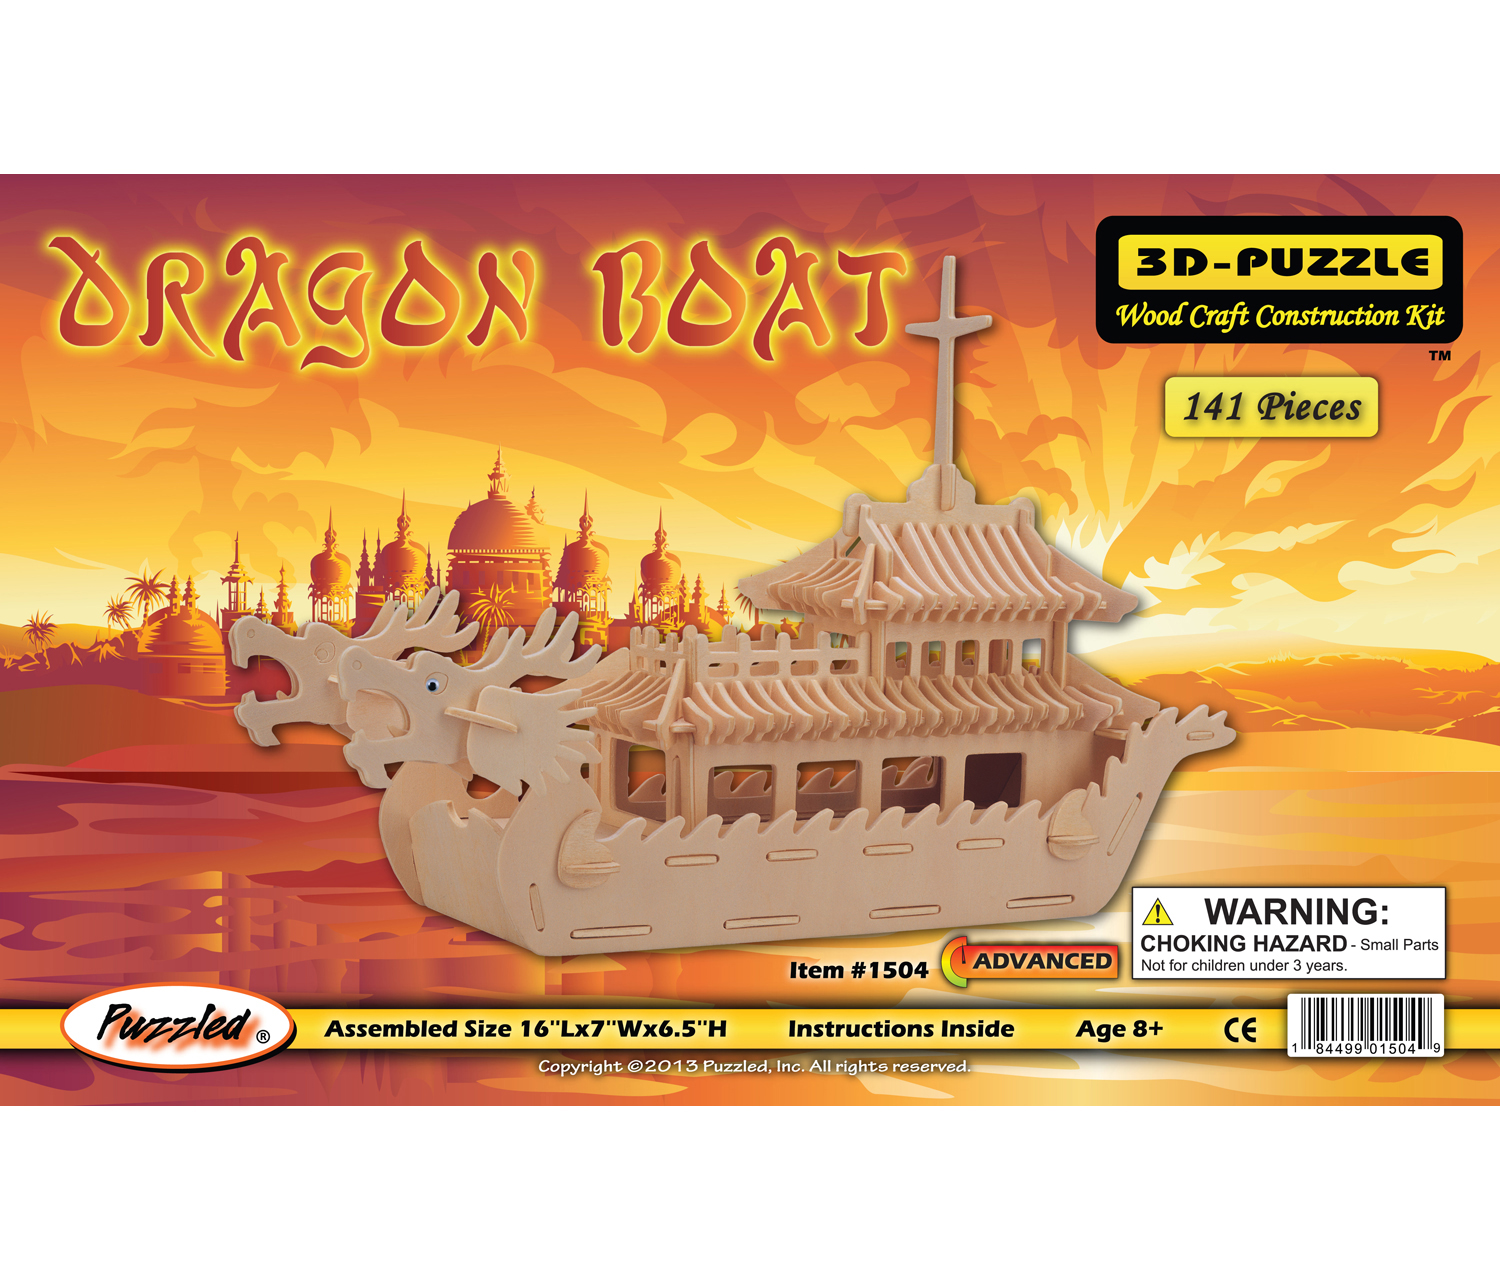 3D Puzzles Dragon Boat by Puzzled